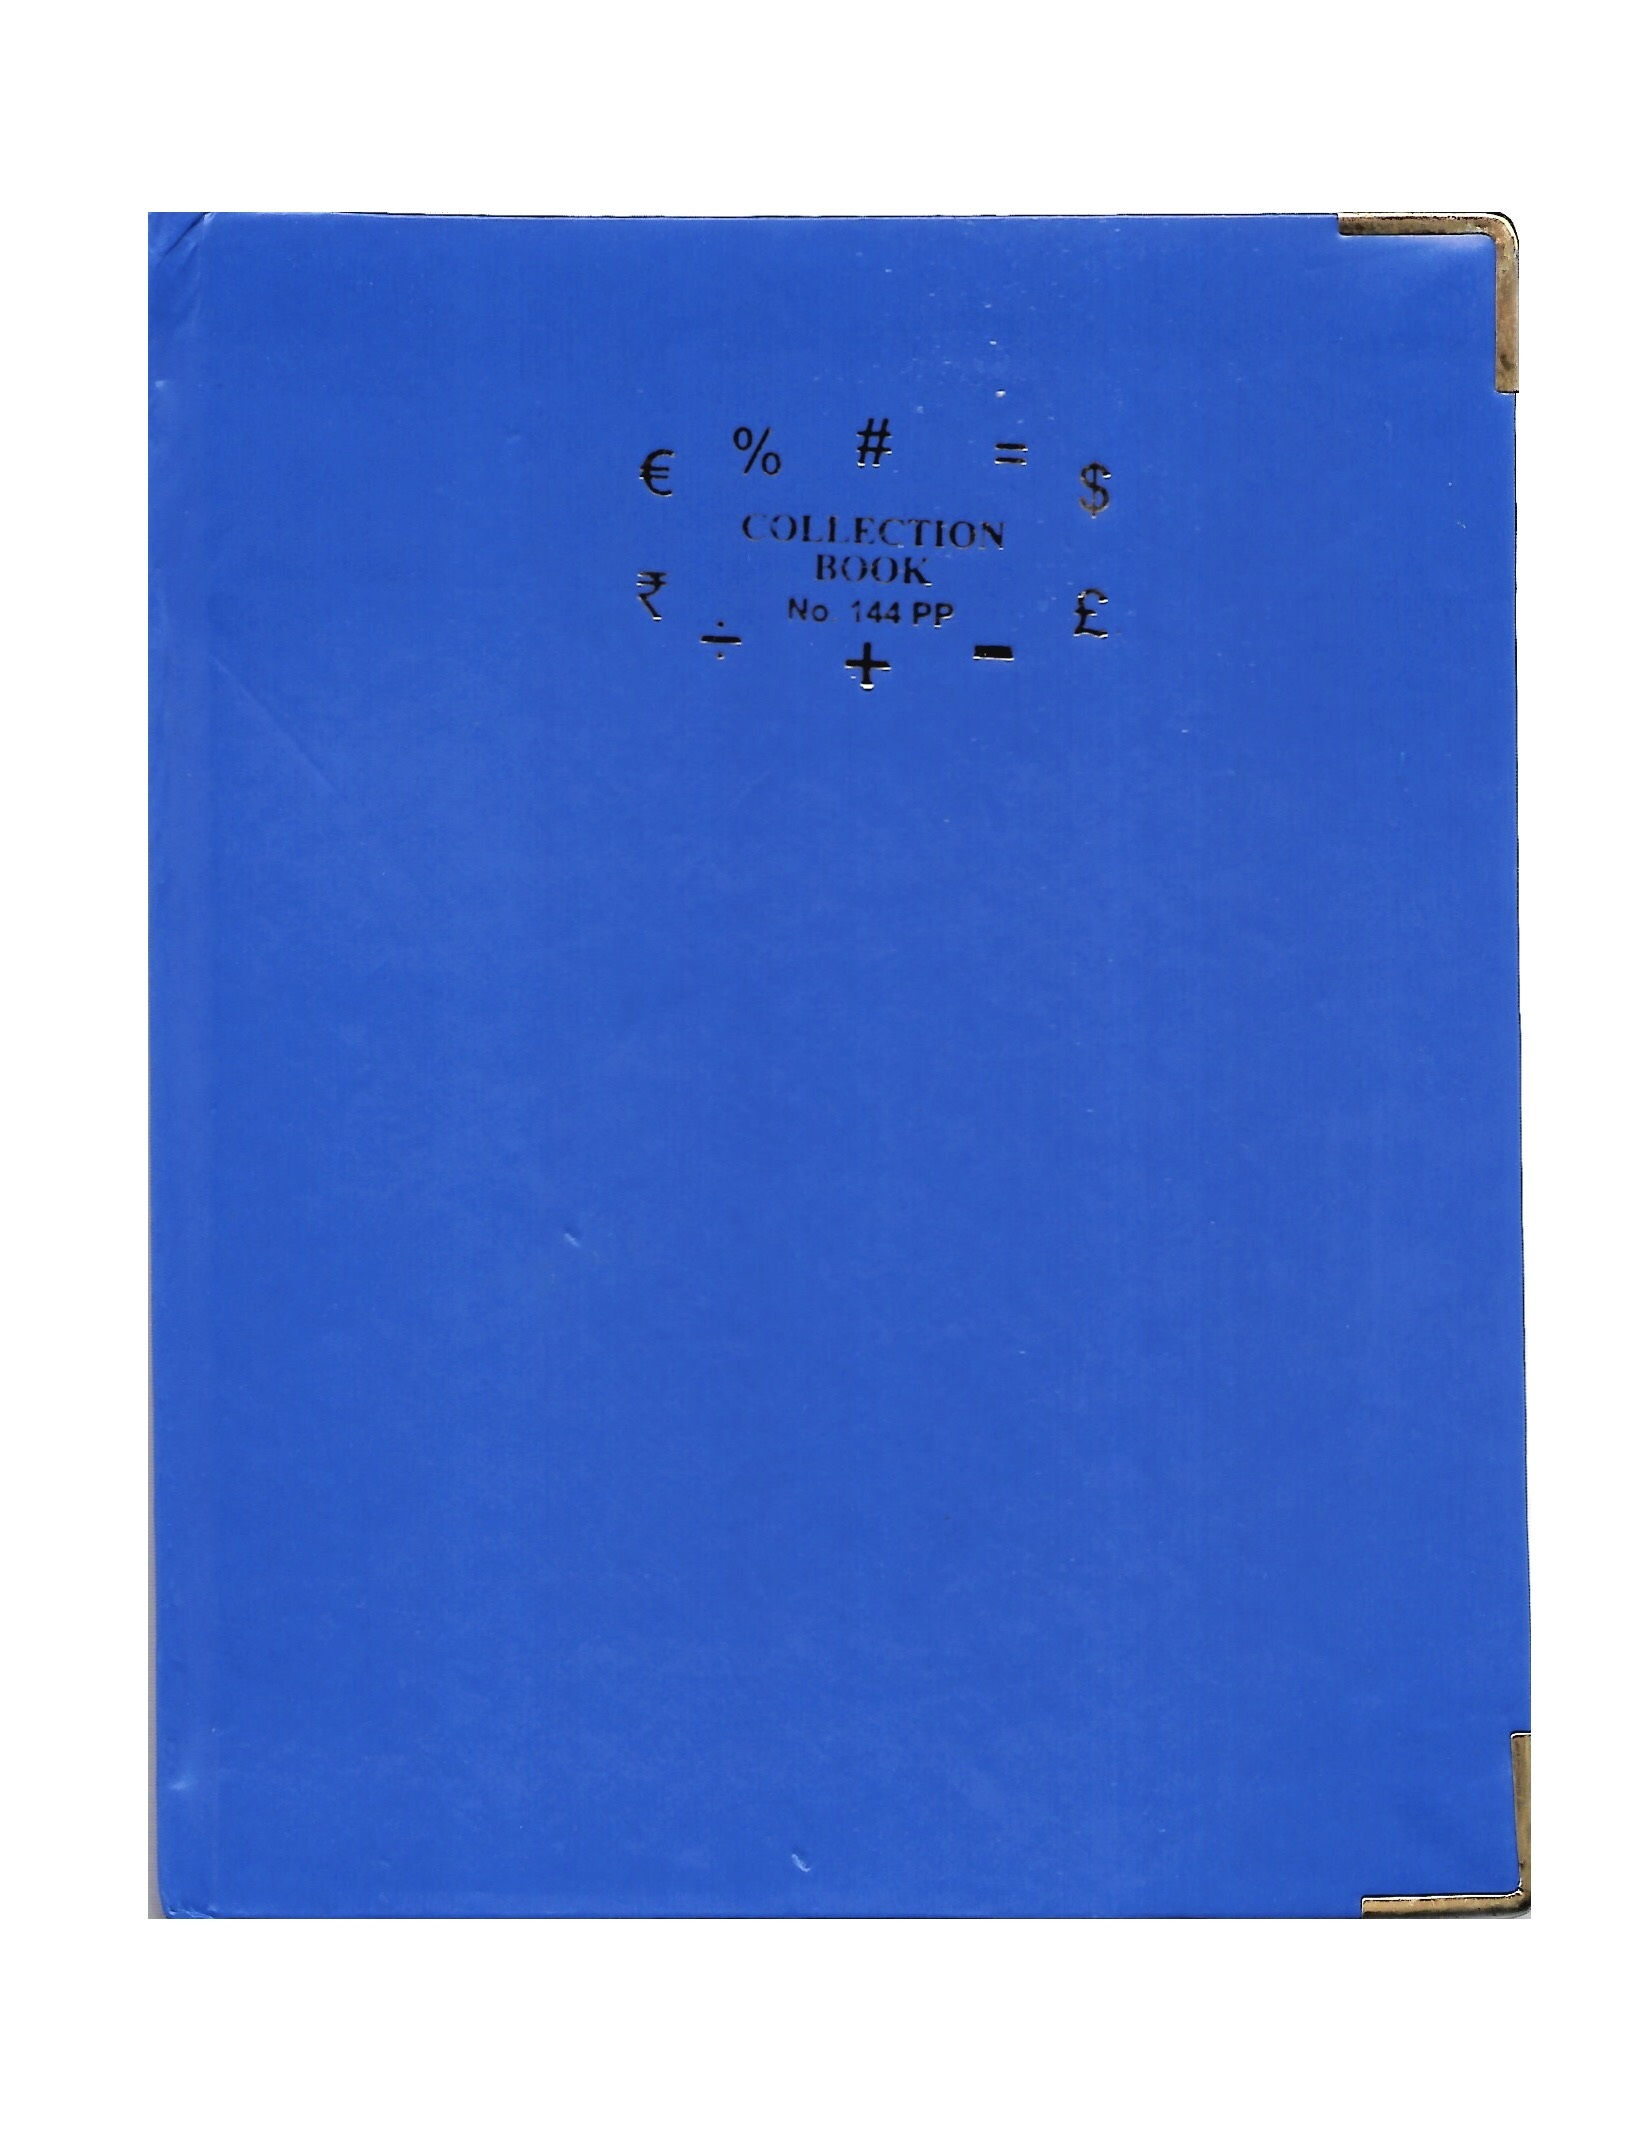 Copy Size Collection Book, 70GSM, 144 Pages